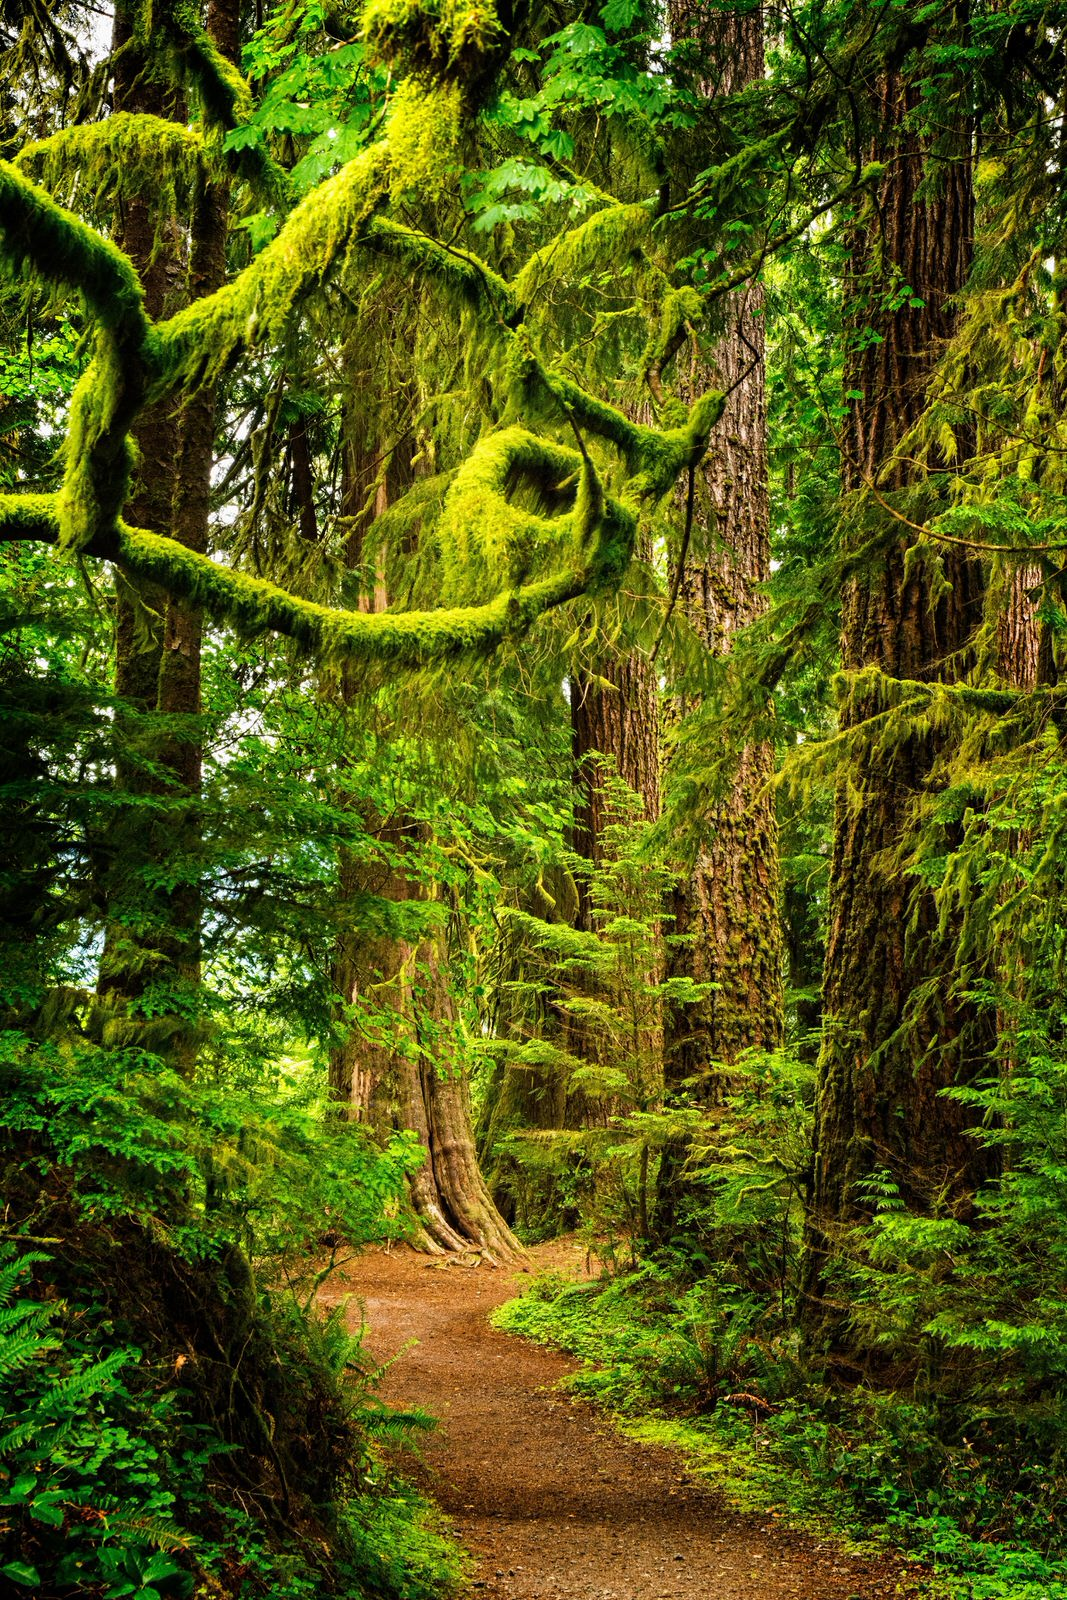 photo: Large mossy spruce trees surround the trail. Photo by Debbie Biddle.